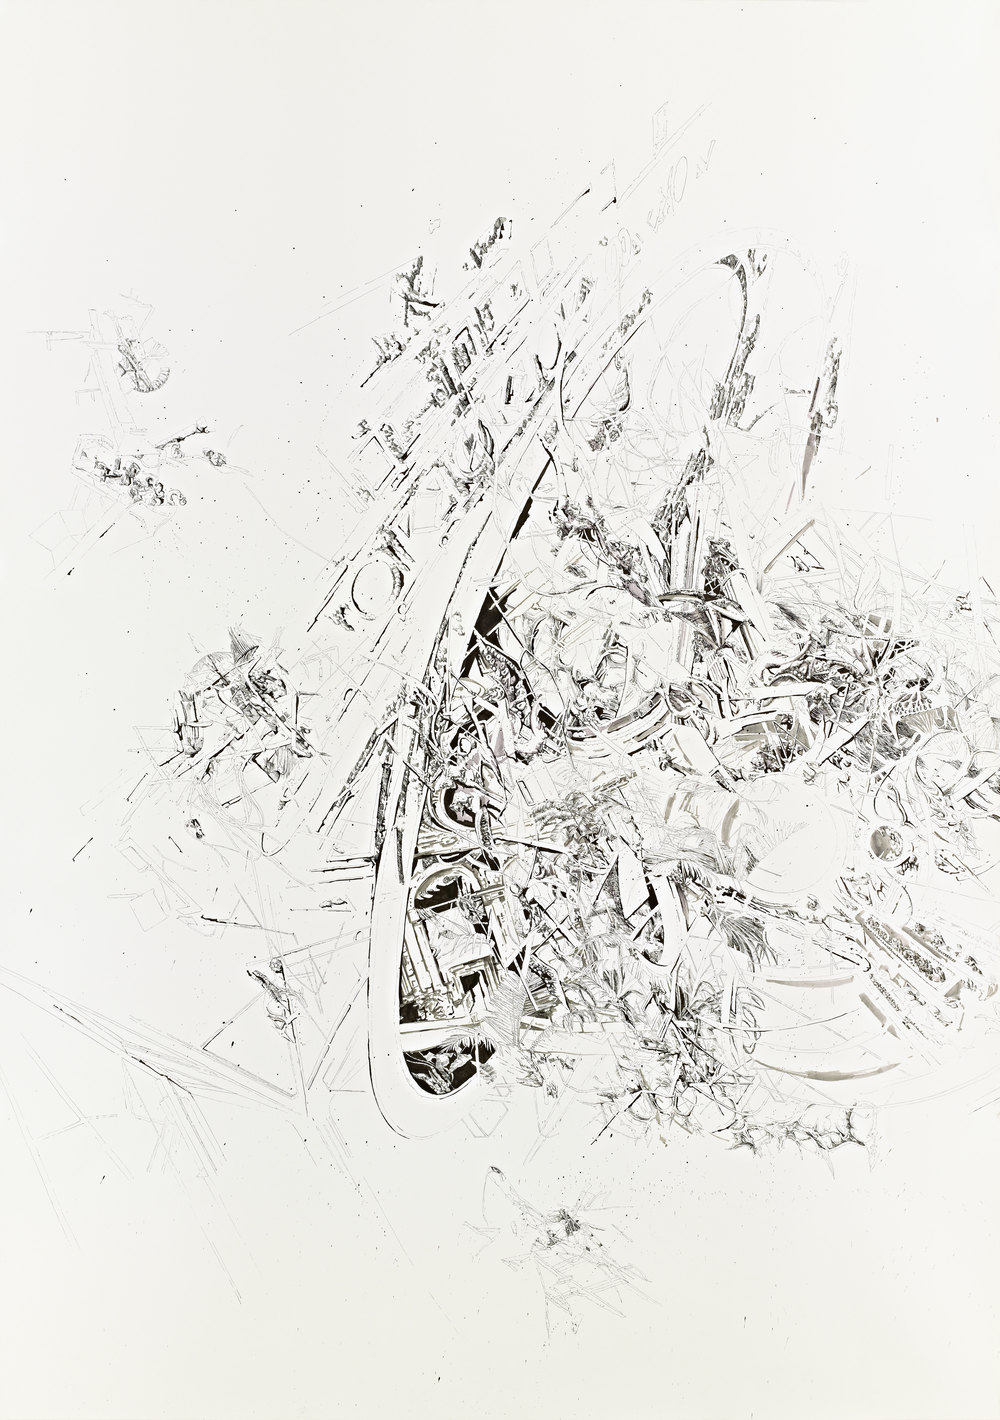 Bettina Krieg | Pxxx  Untitled | Triptych A | Ink & Graphit on Paper | 270x190cm | 2012